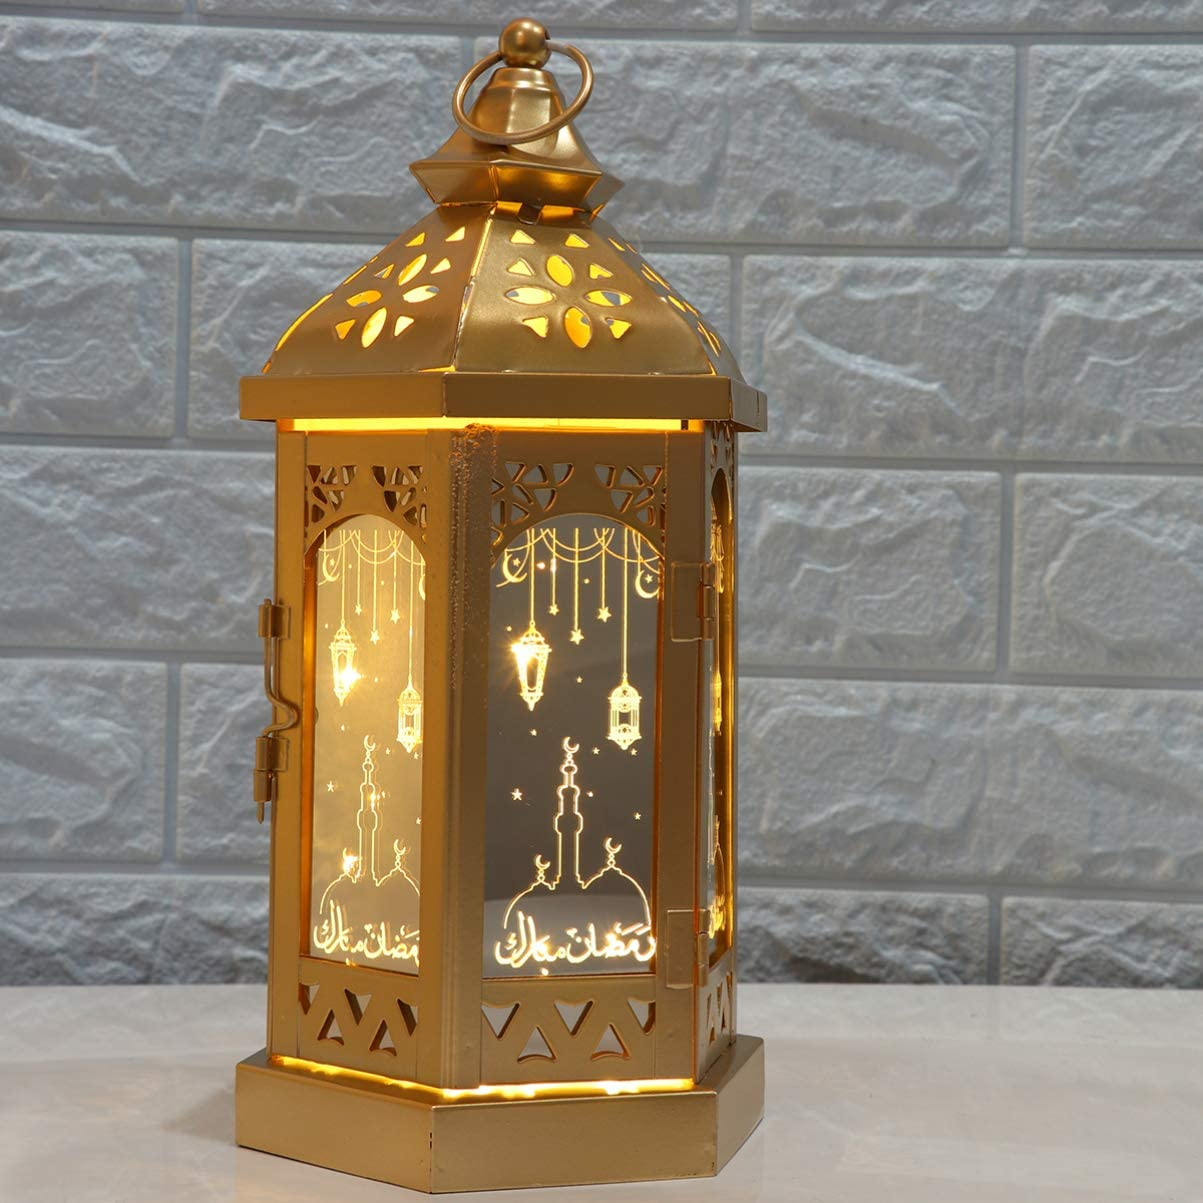 mobestech ramadan table lantern iron muslim church pattern eid table lantern ramadan hanging lantern for home 1pcs gloden amazon com amazon com